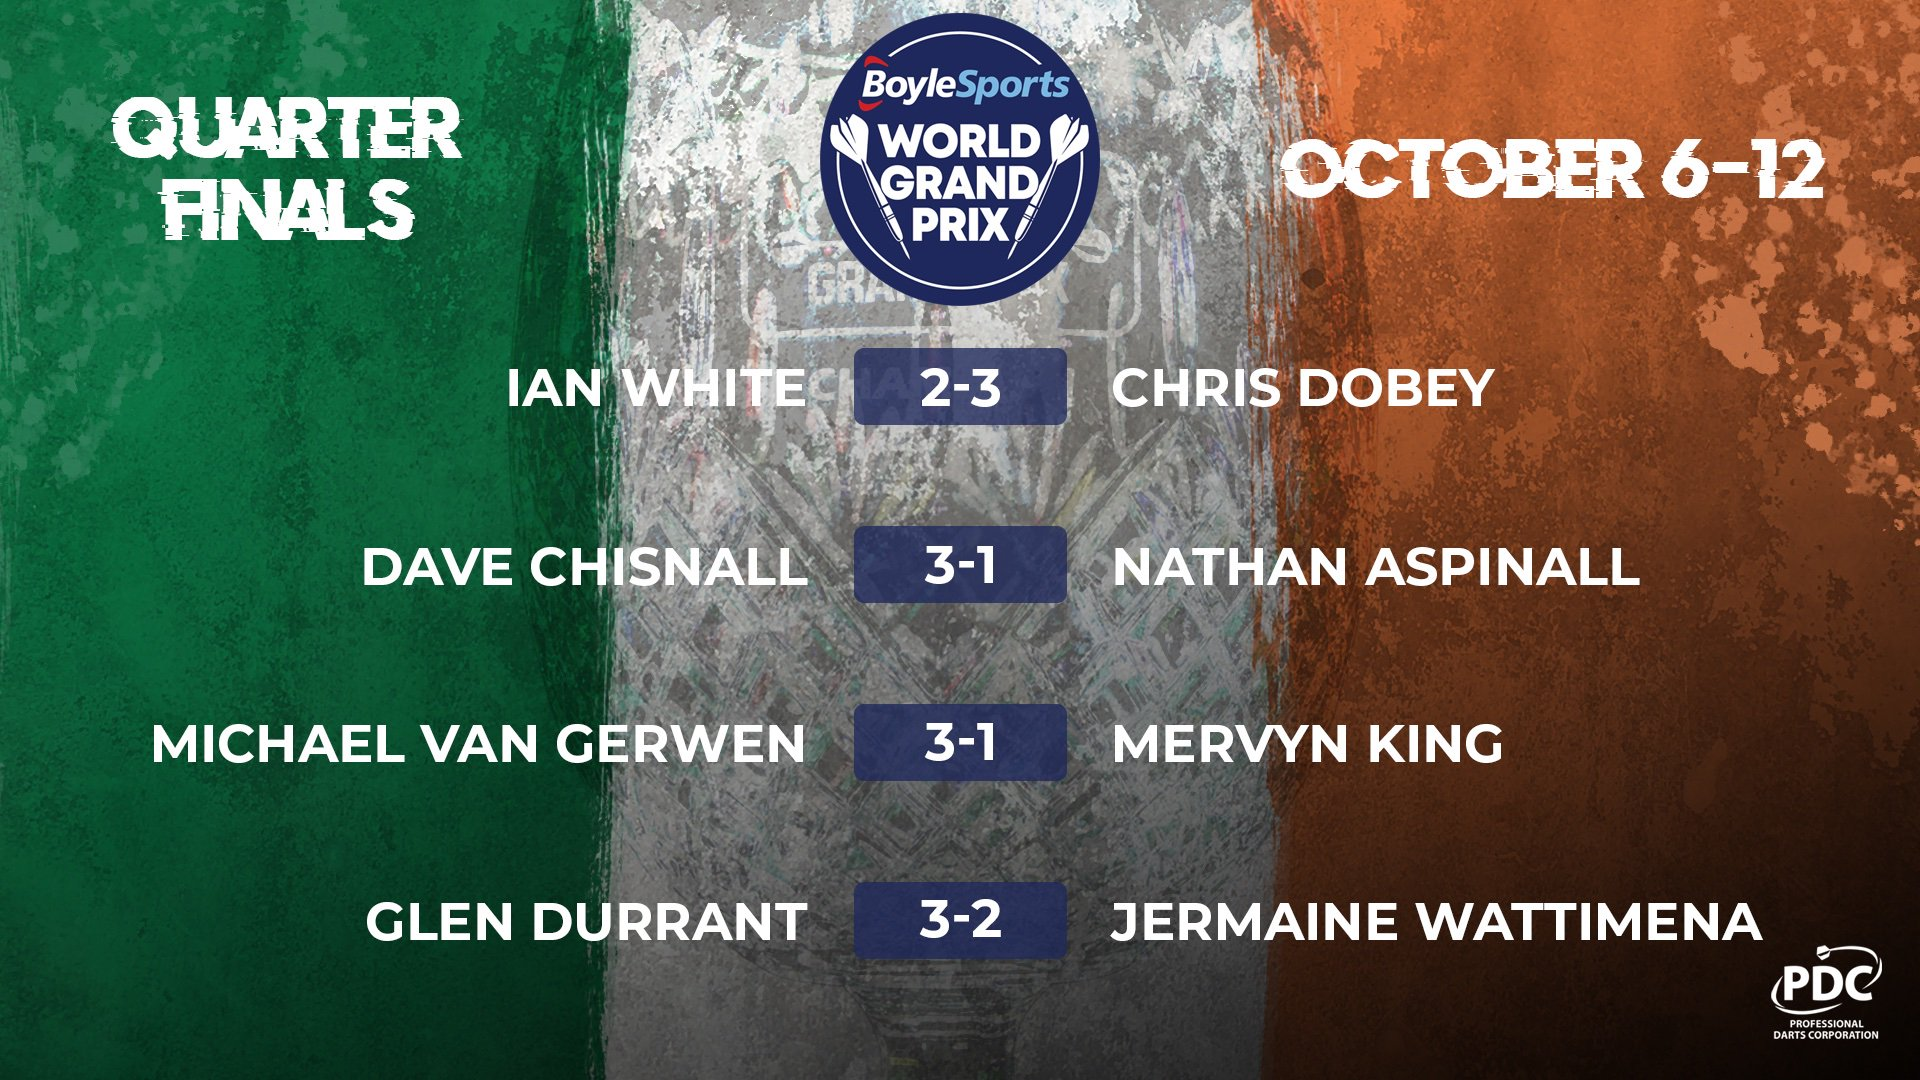 World Grand Prix results (PDC)